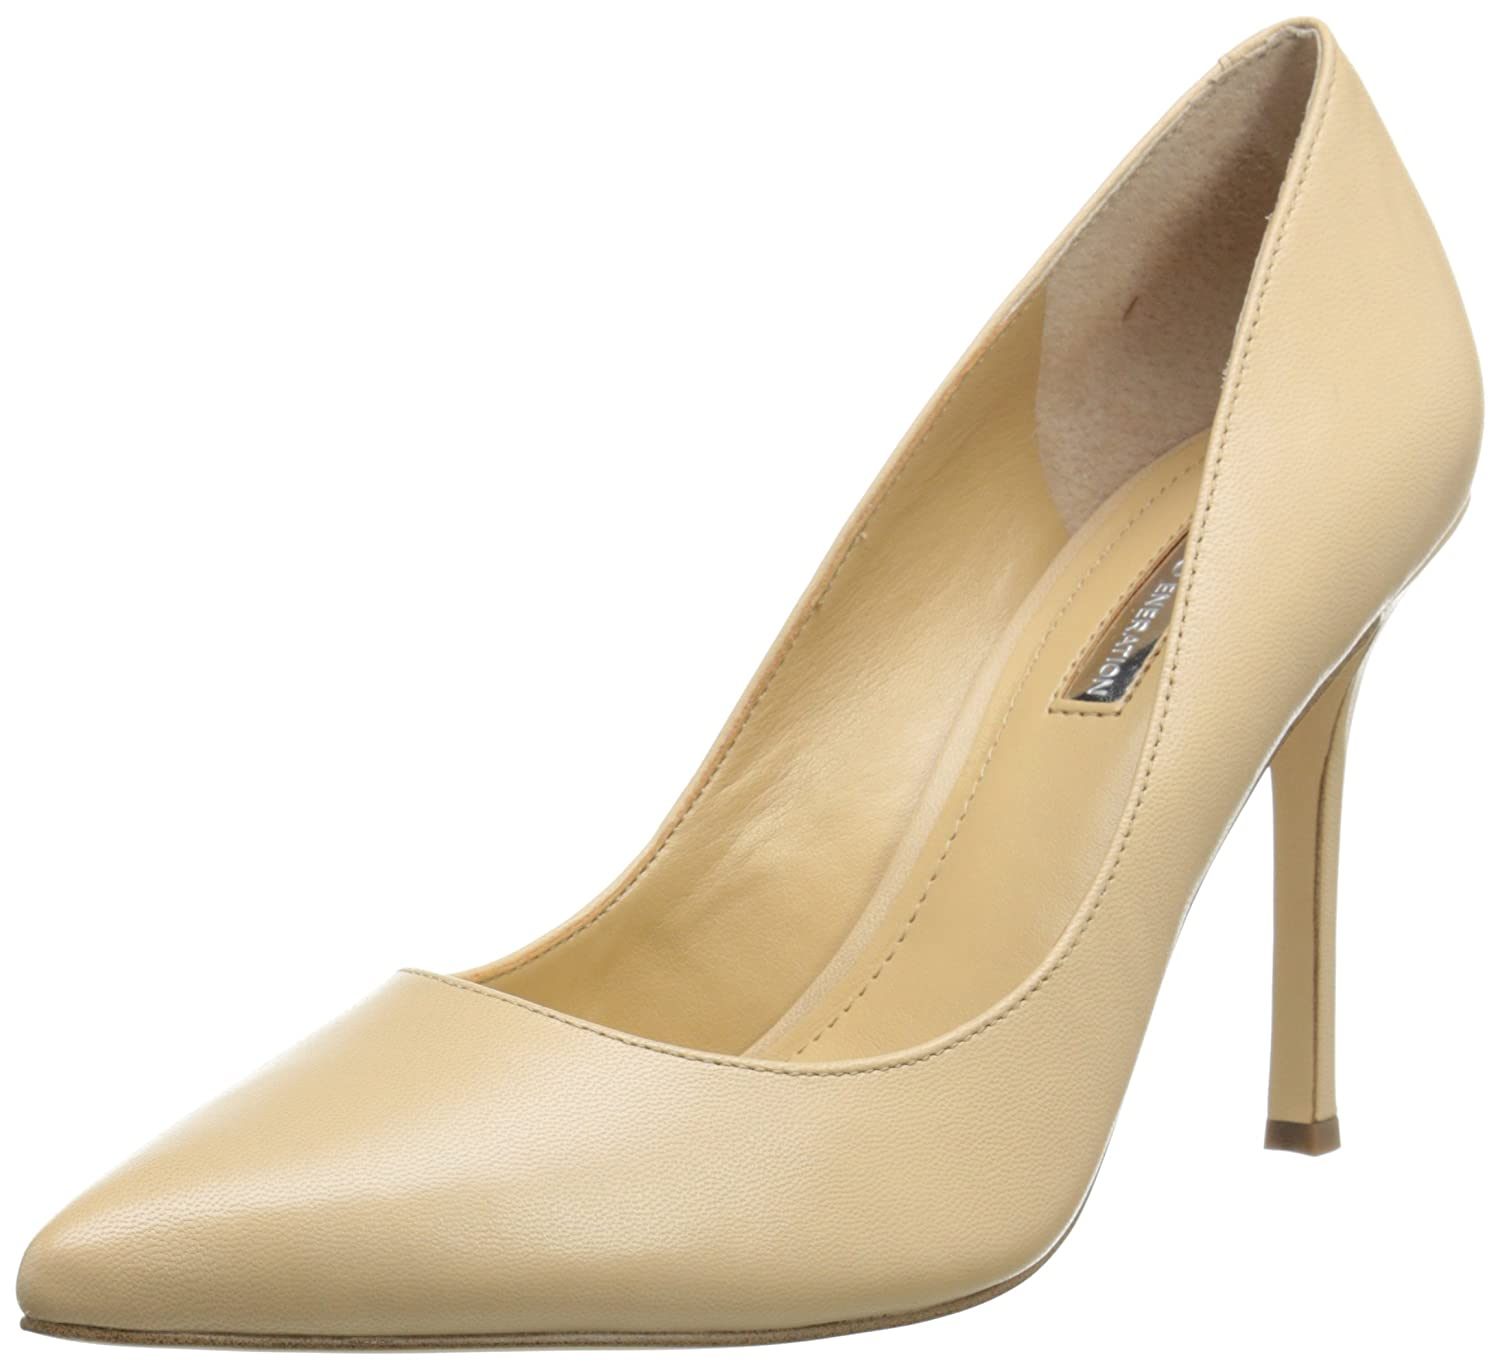 Warm Sand Leather BCBGeneration Women's BG-Treasure Dress Pump